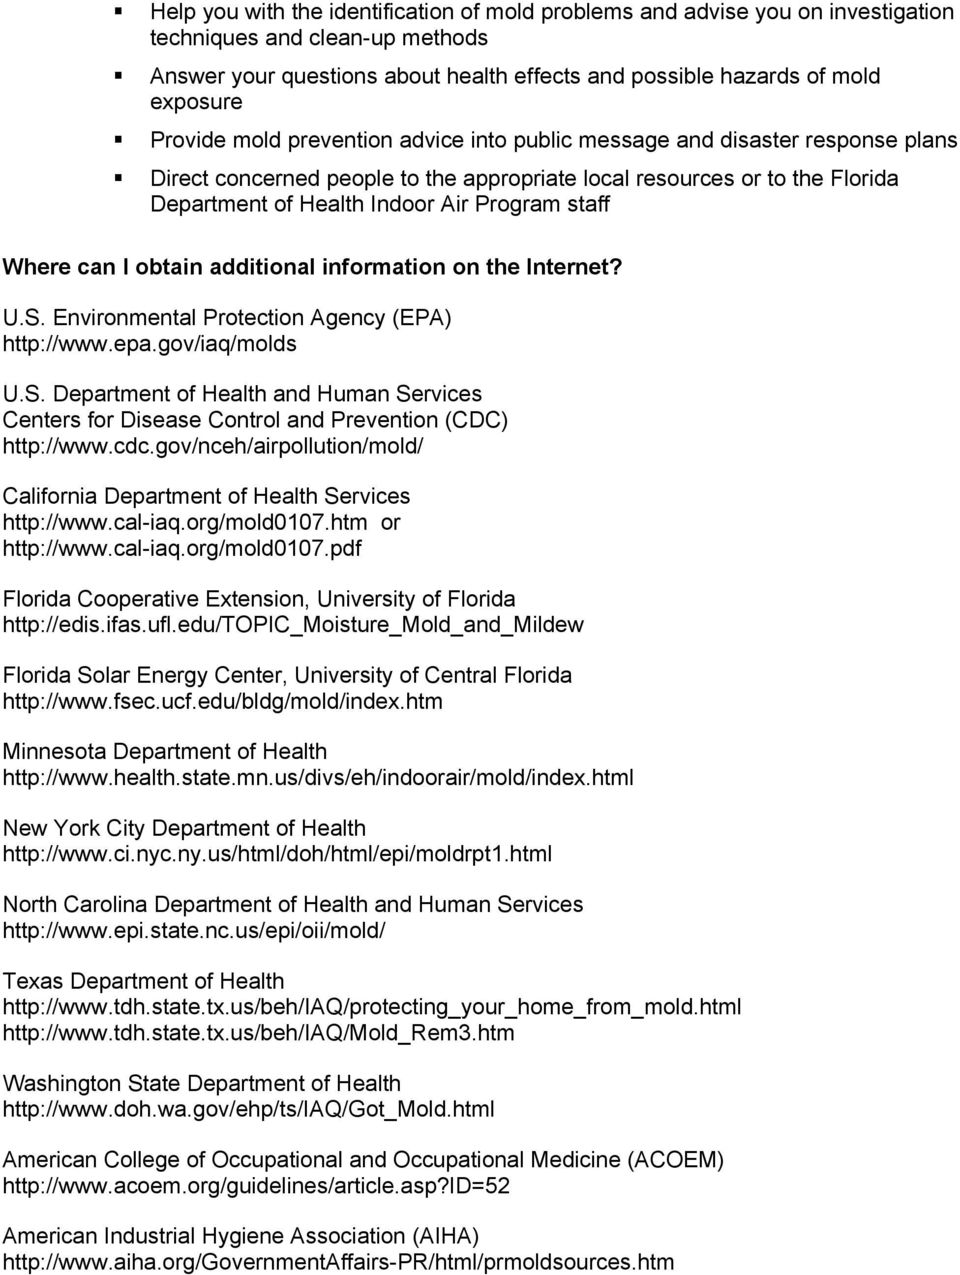 staff Where can I obtain additional information on the Internet? U.S. Environmental Protection Agency (EPA) http://www.epa.gov/iaq/molds U.S. Department of Health and Human Services Centers for Disease Control and Prevention (CDC) http://www.